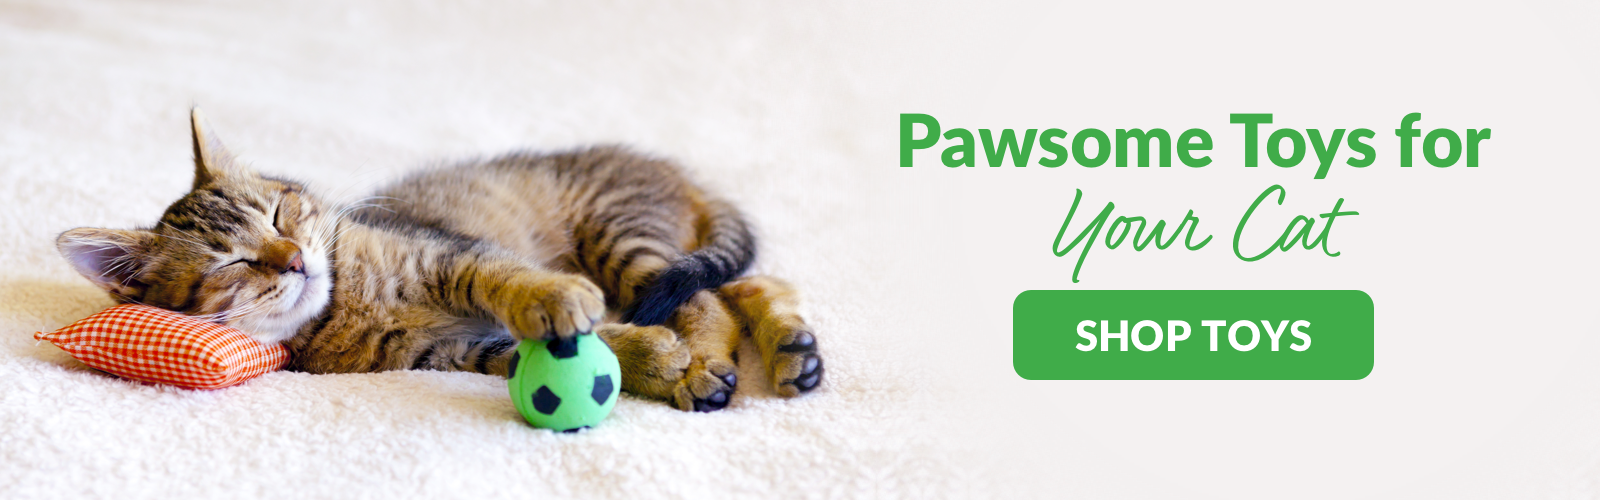 shop paw-some toys for your cat